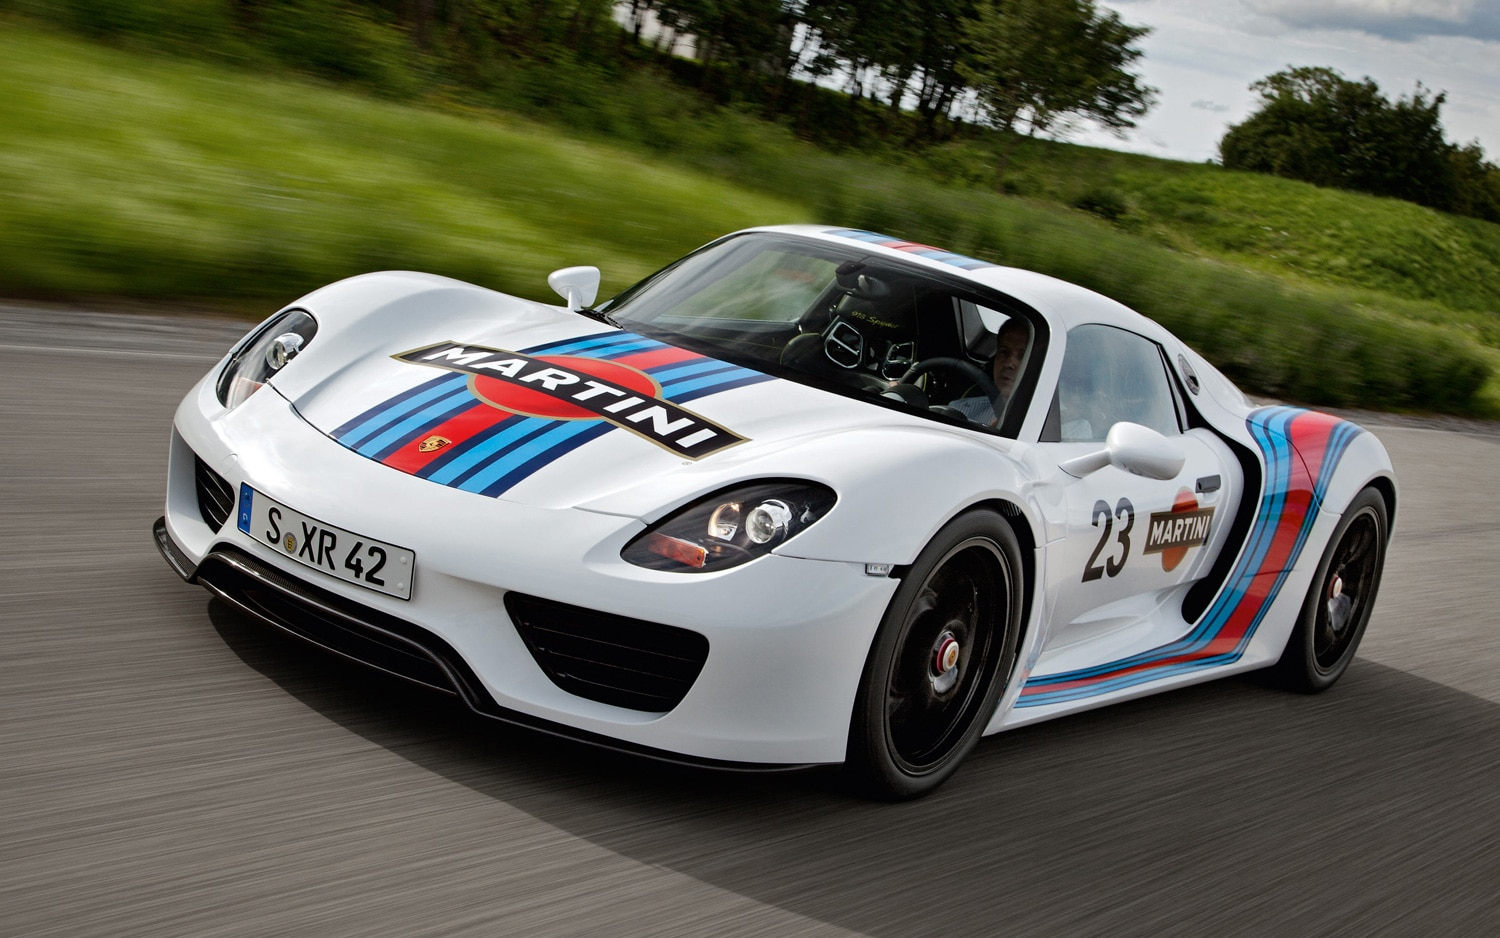 Porsche 918 Spyder Prototype Martini Racing Front Three Quarters View At Speed1